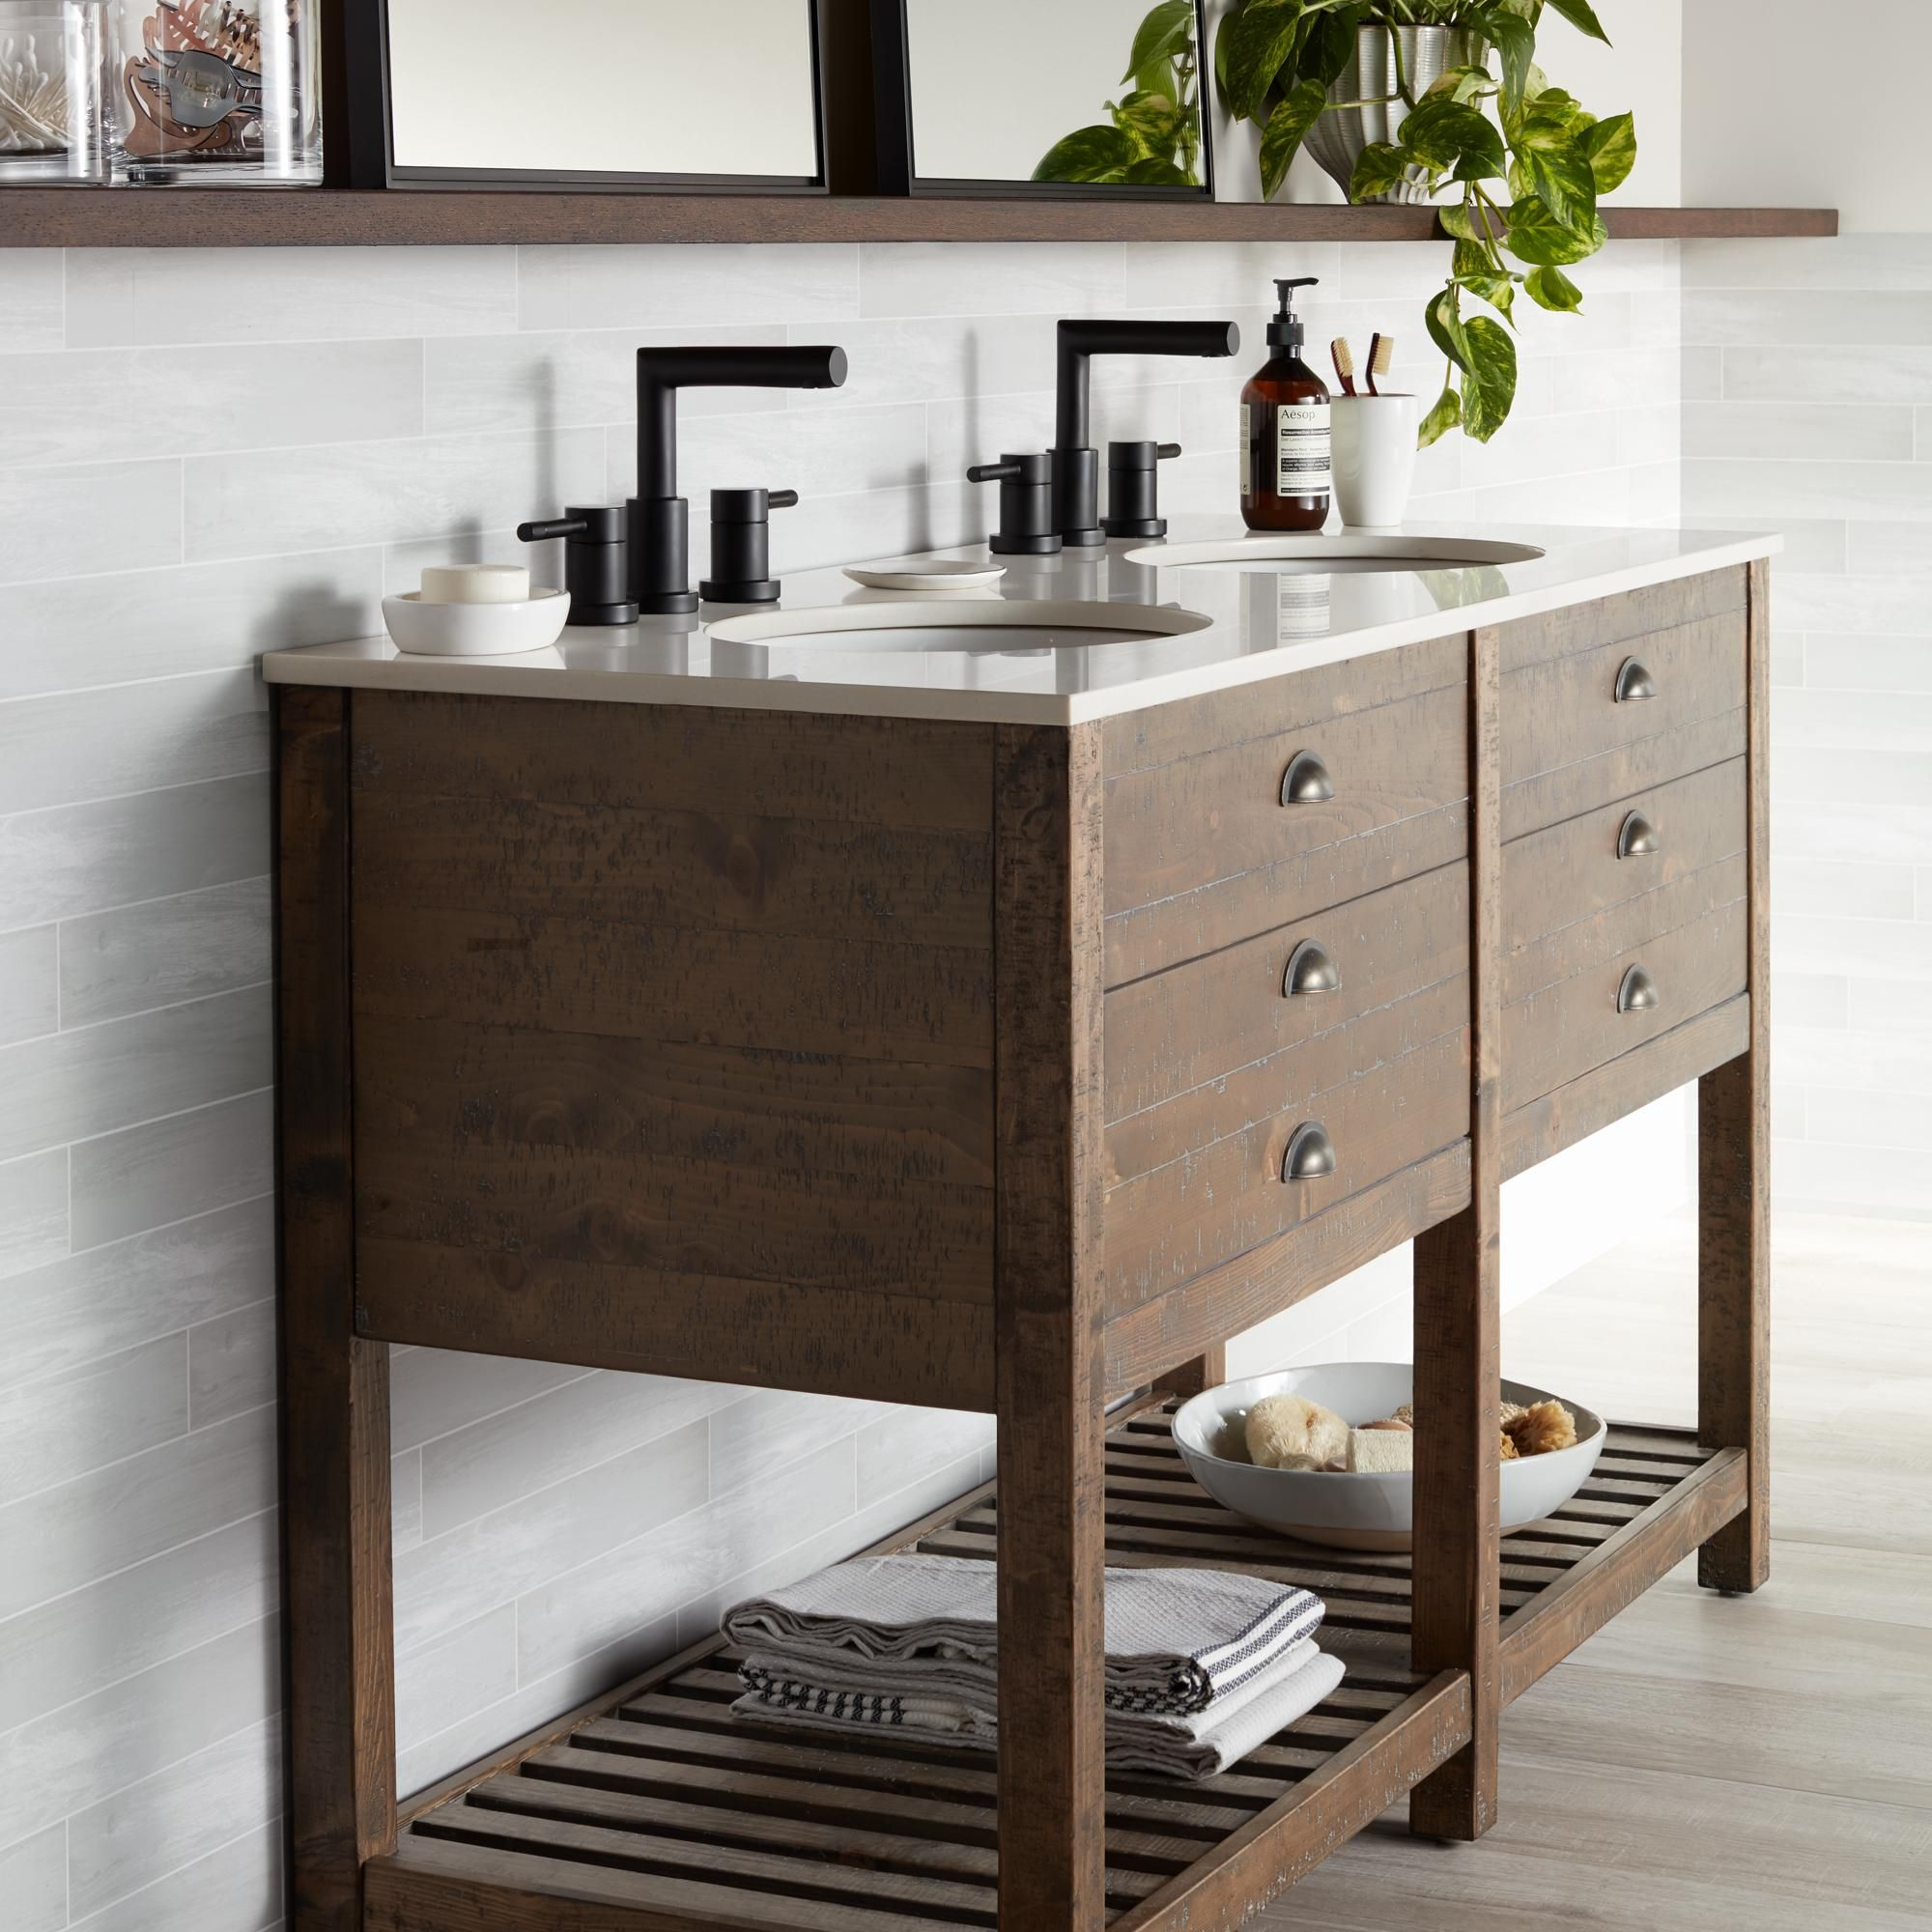 Crosett Cayhill 57 Inch Wide Cultured Marble Double Sink Vanity